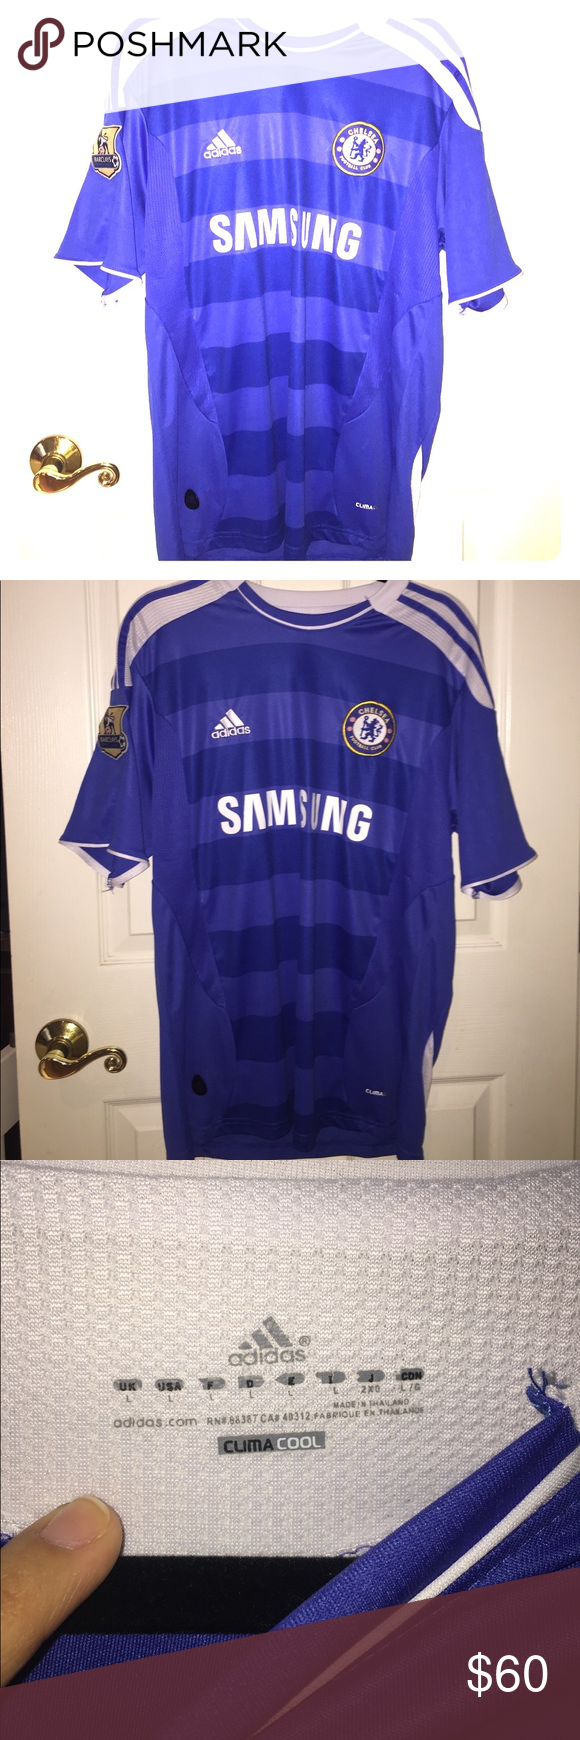 d9c0dd602 Authentic Chelsea Jersey Adidas Chelsea Jersey. Size L. Mint condition!! Don't  forget to bundle & save 😁 adidas Shirts Tees - Short Sleeve